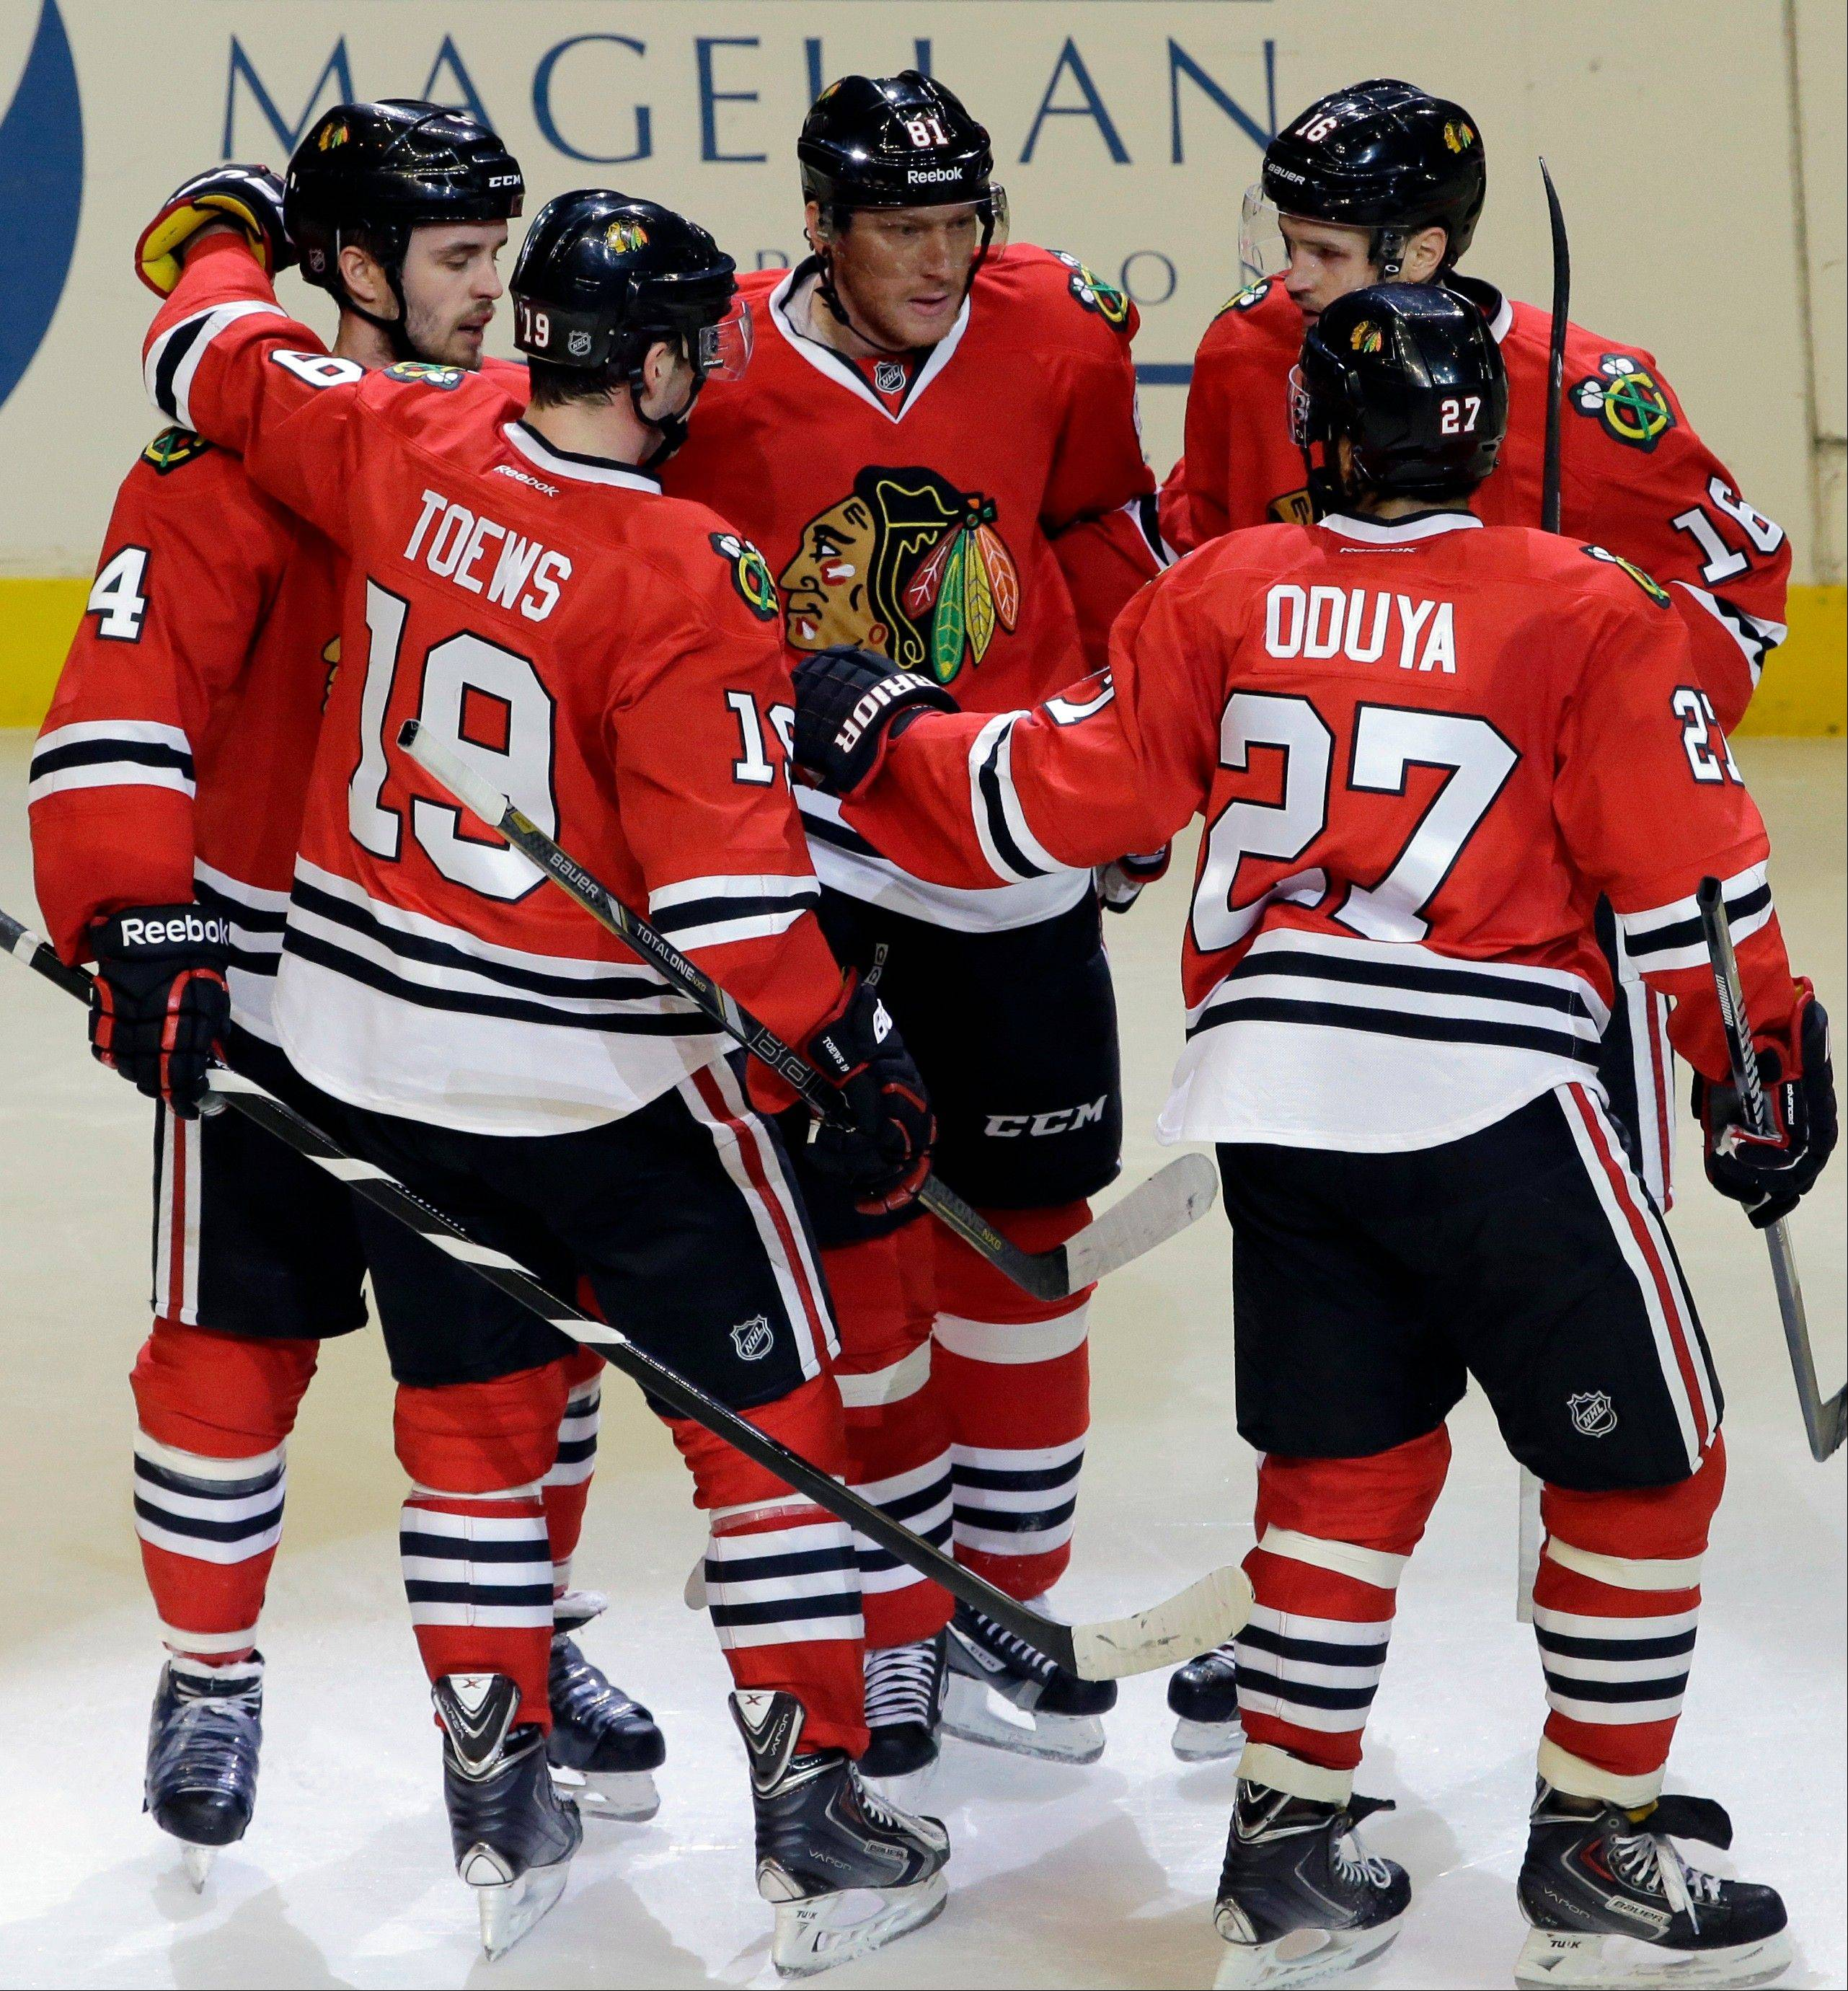 The Blackhawks� Marian Hossa, middle, celebrates with teammates after scoring his second goal during Friday�s victory over Anaheim at the United Center.